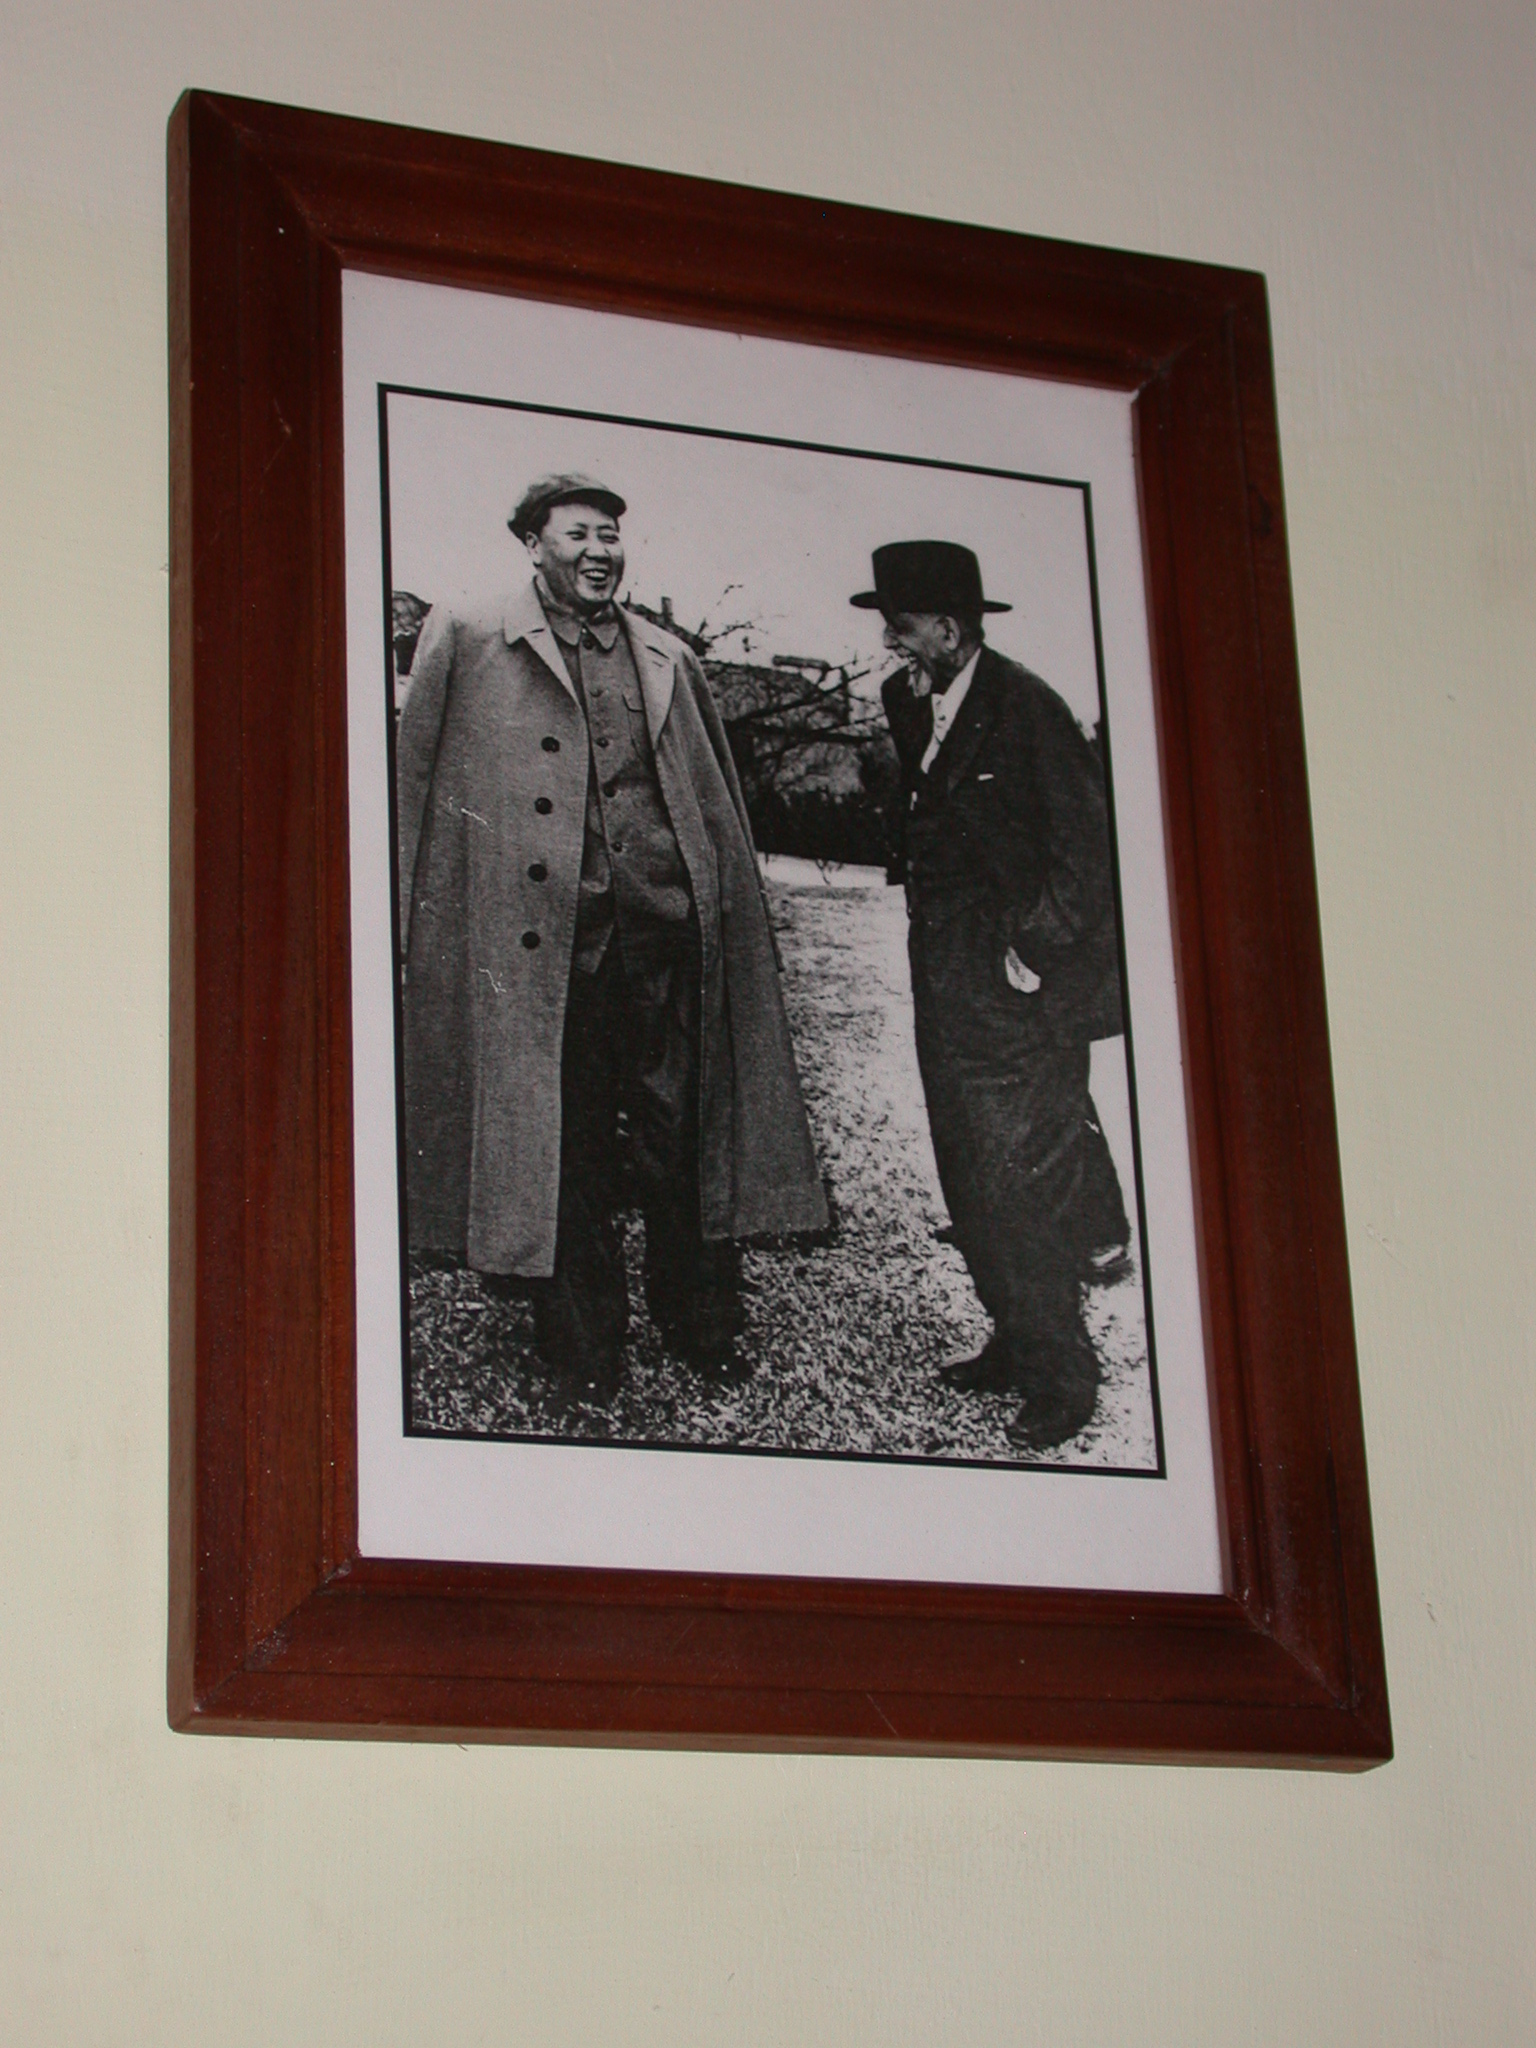 Photograph of Mao Tse-Tung and WEB DuBois, WEB DuBois Memorial Centre for Pan African Culture, Accra, Ghana